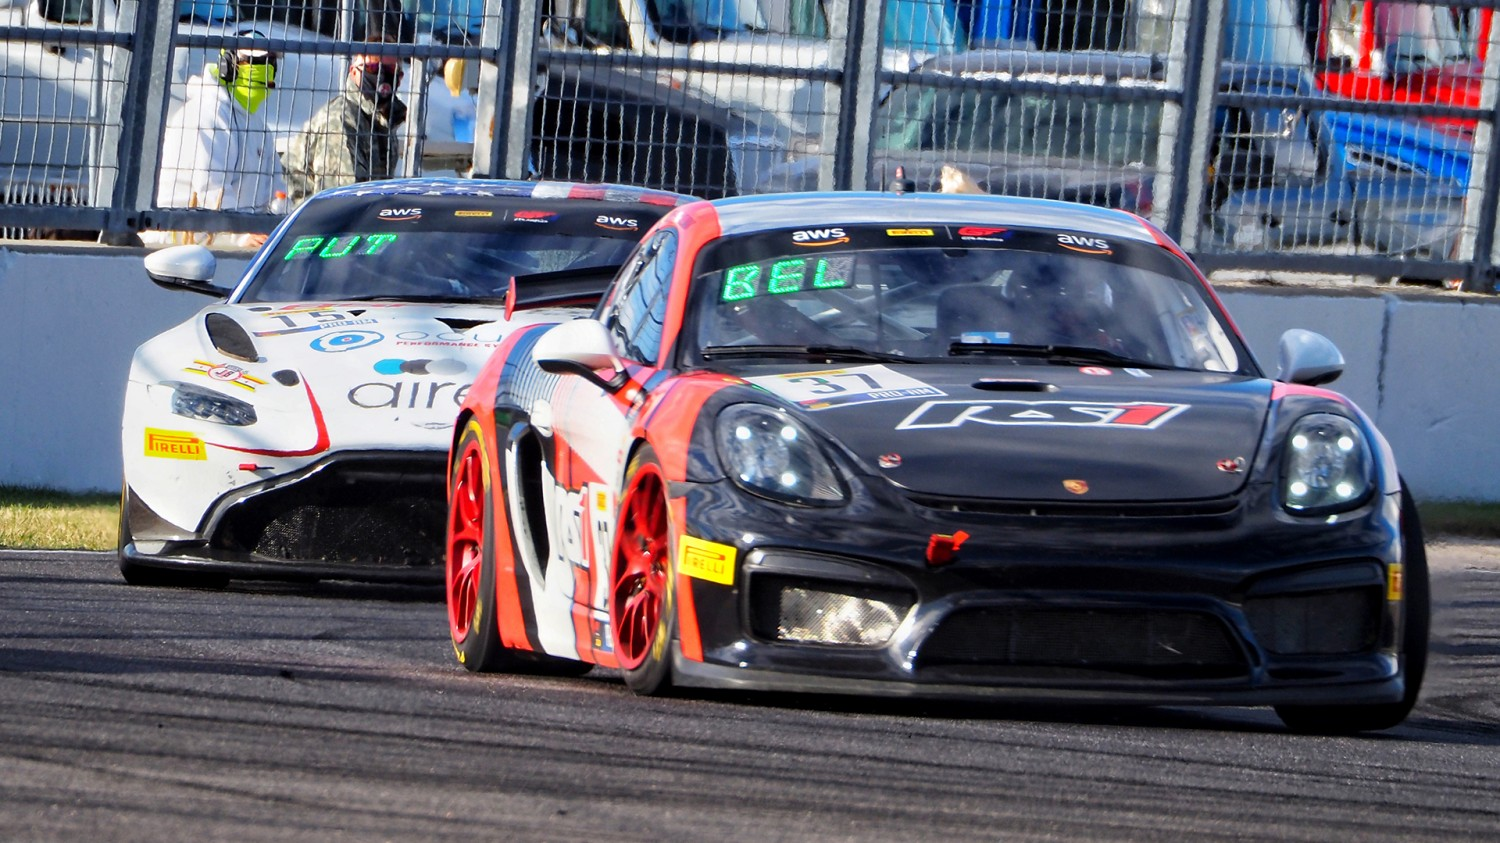 Heylen/Belluardo Take RS1 To The Top In Exciting Pirelli GT4 America SprintX Race 1 at IMS